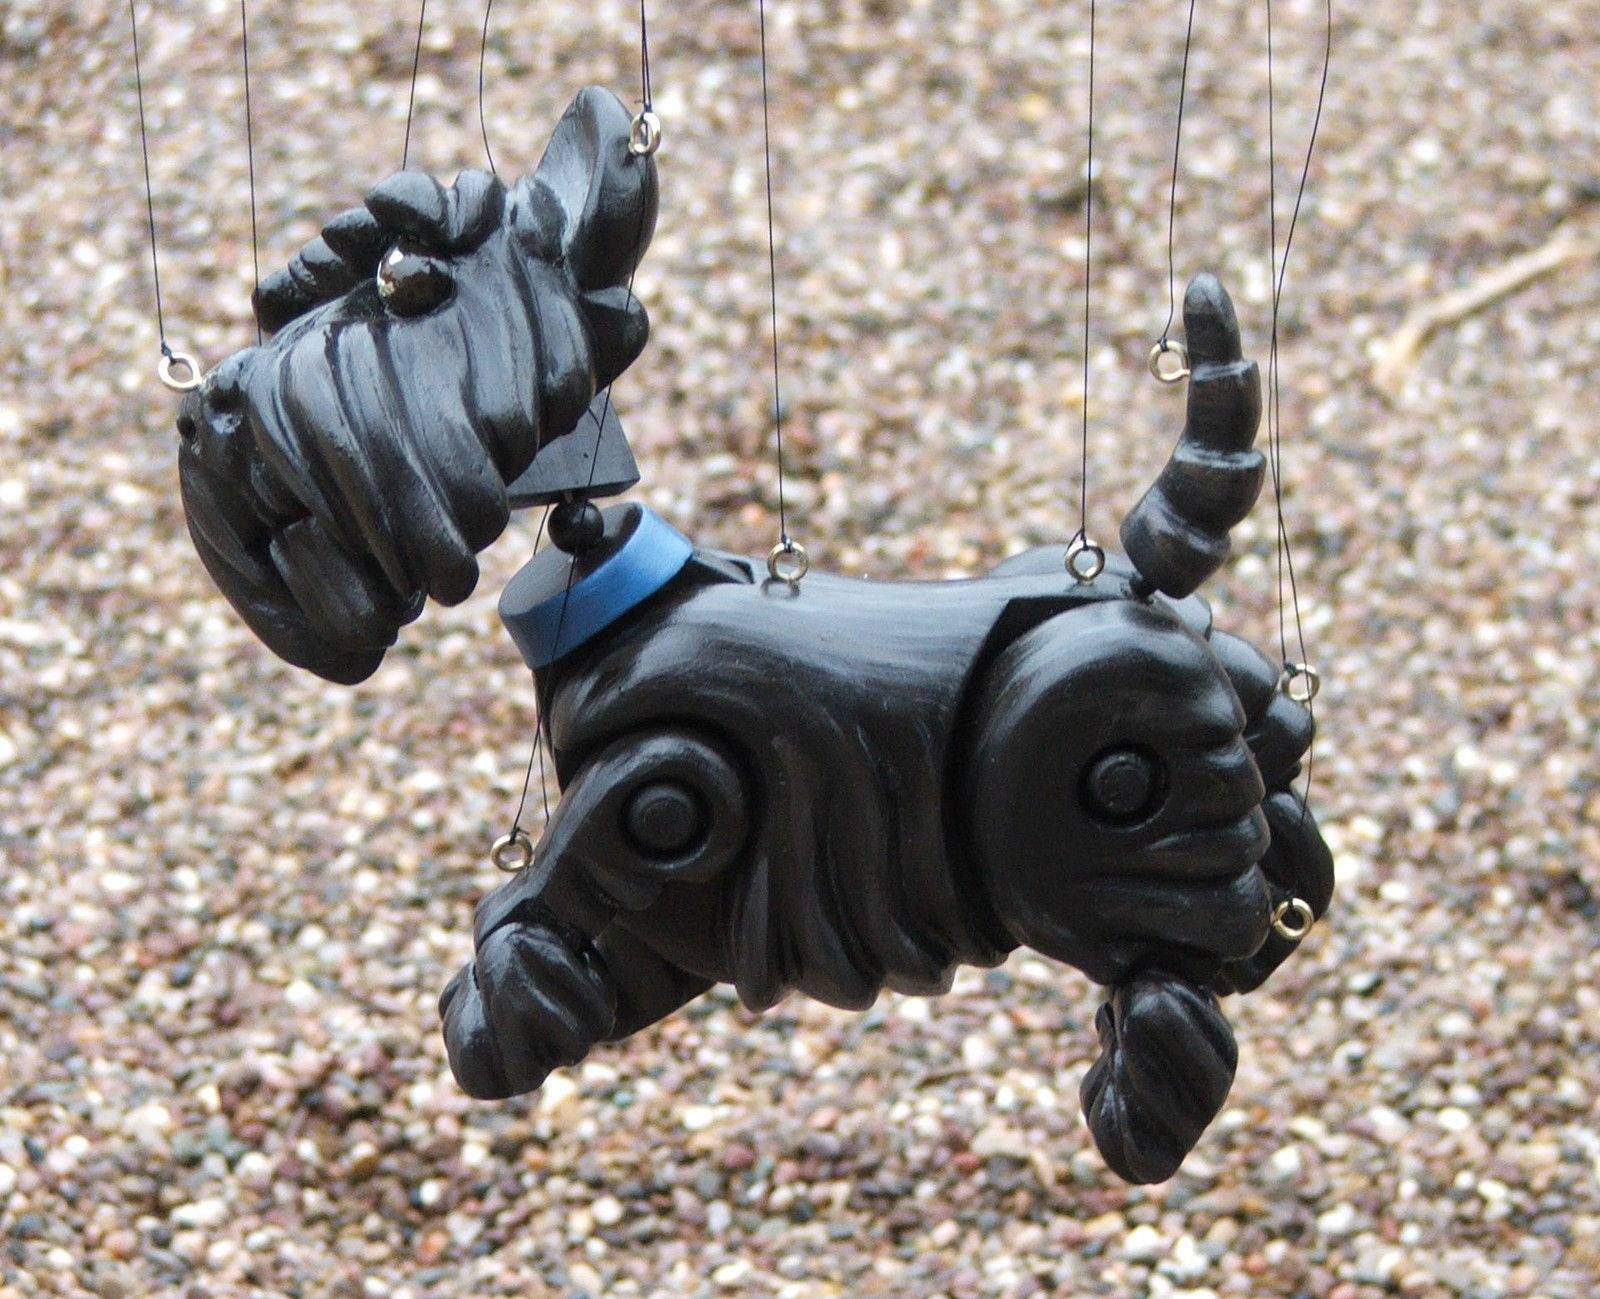 Scottish Terrier, Marionette, puppet, scottie, dog, purebred dog